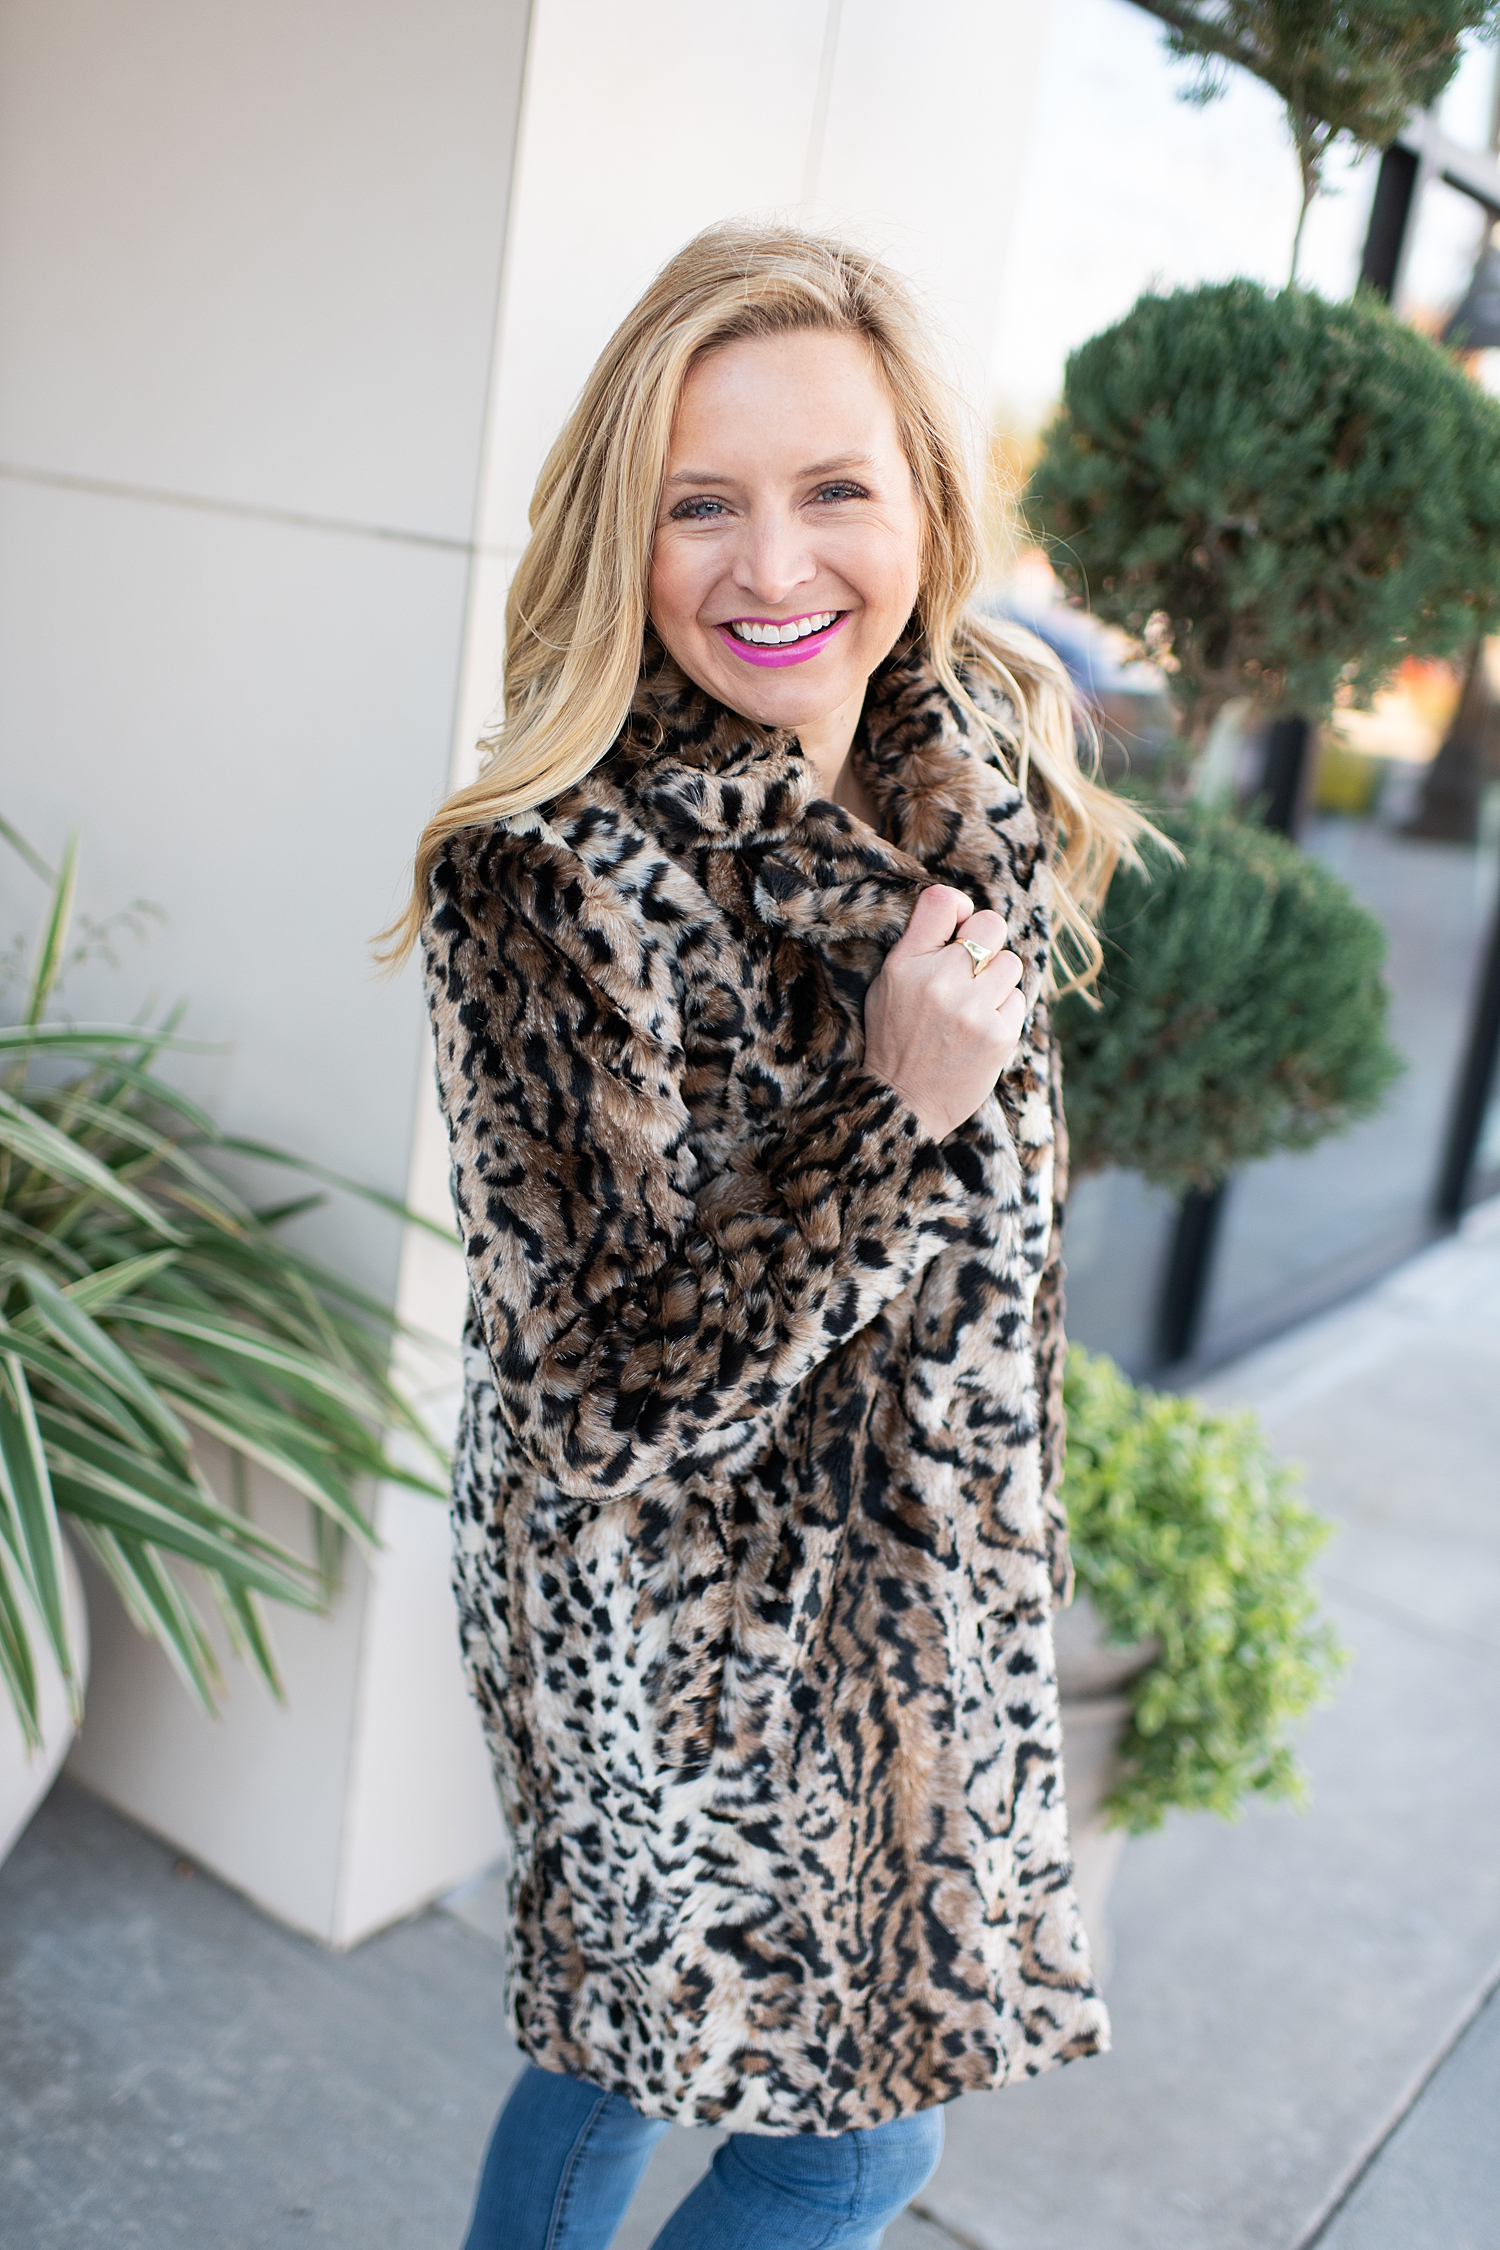 Fancy Ashley x Social Threads collection featured by top Houston fashion blogger, Fancy Ashley: image of a woman wearing a Social Threads leopard faux fur coat, Social Threads skinny jeans, and Golden Goose sneakers